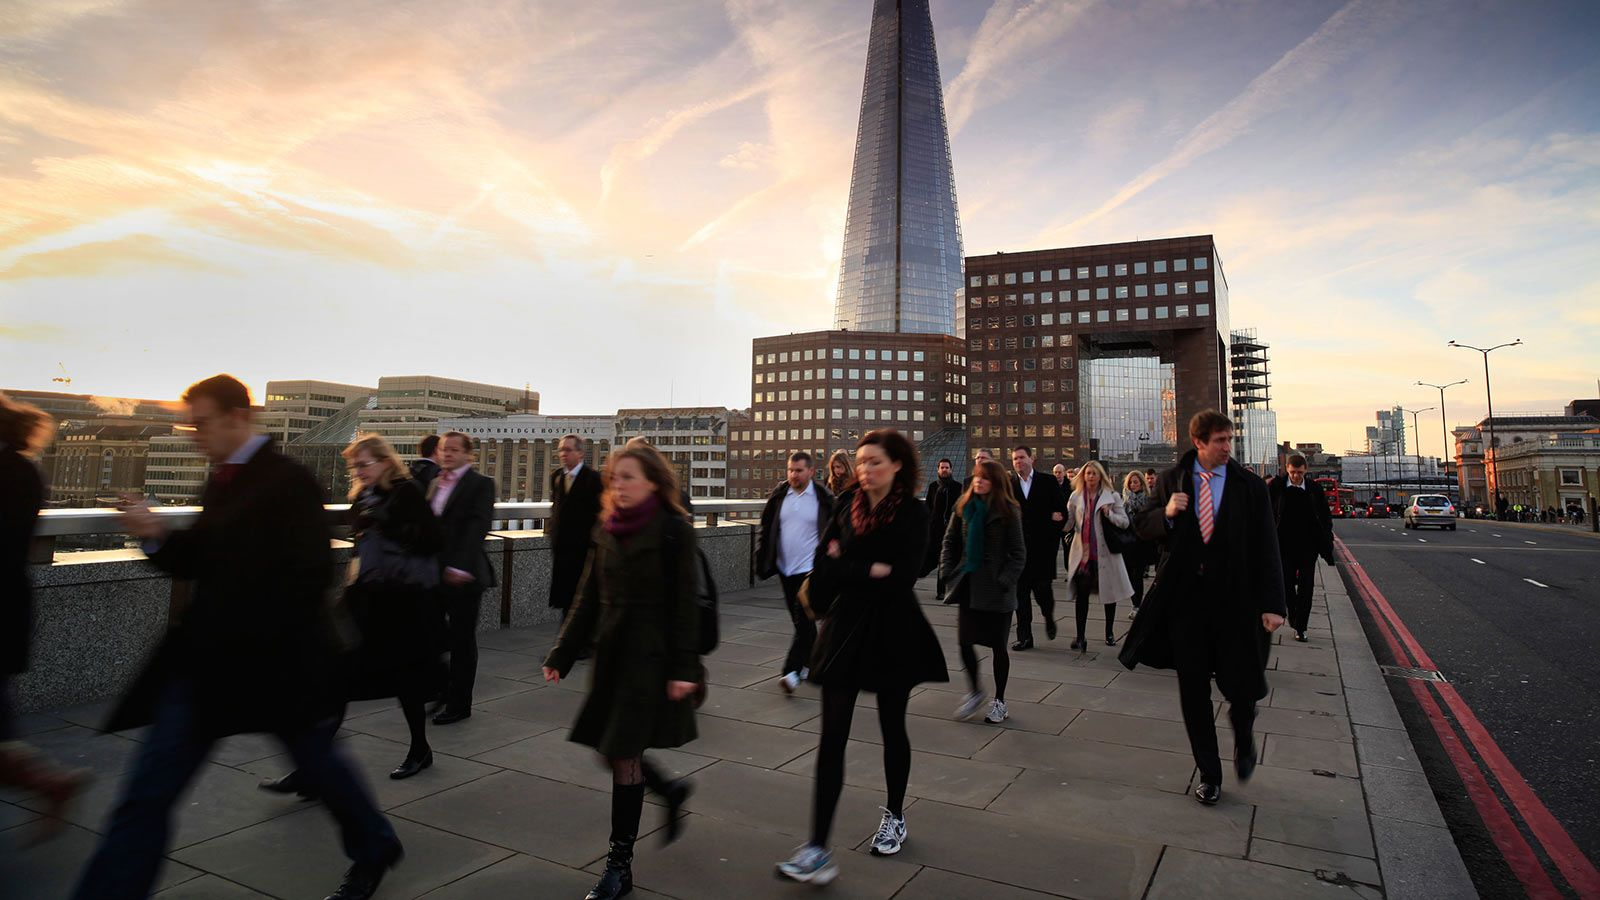 People Walking on London Bridge With The Shard in the Background - Mace Group